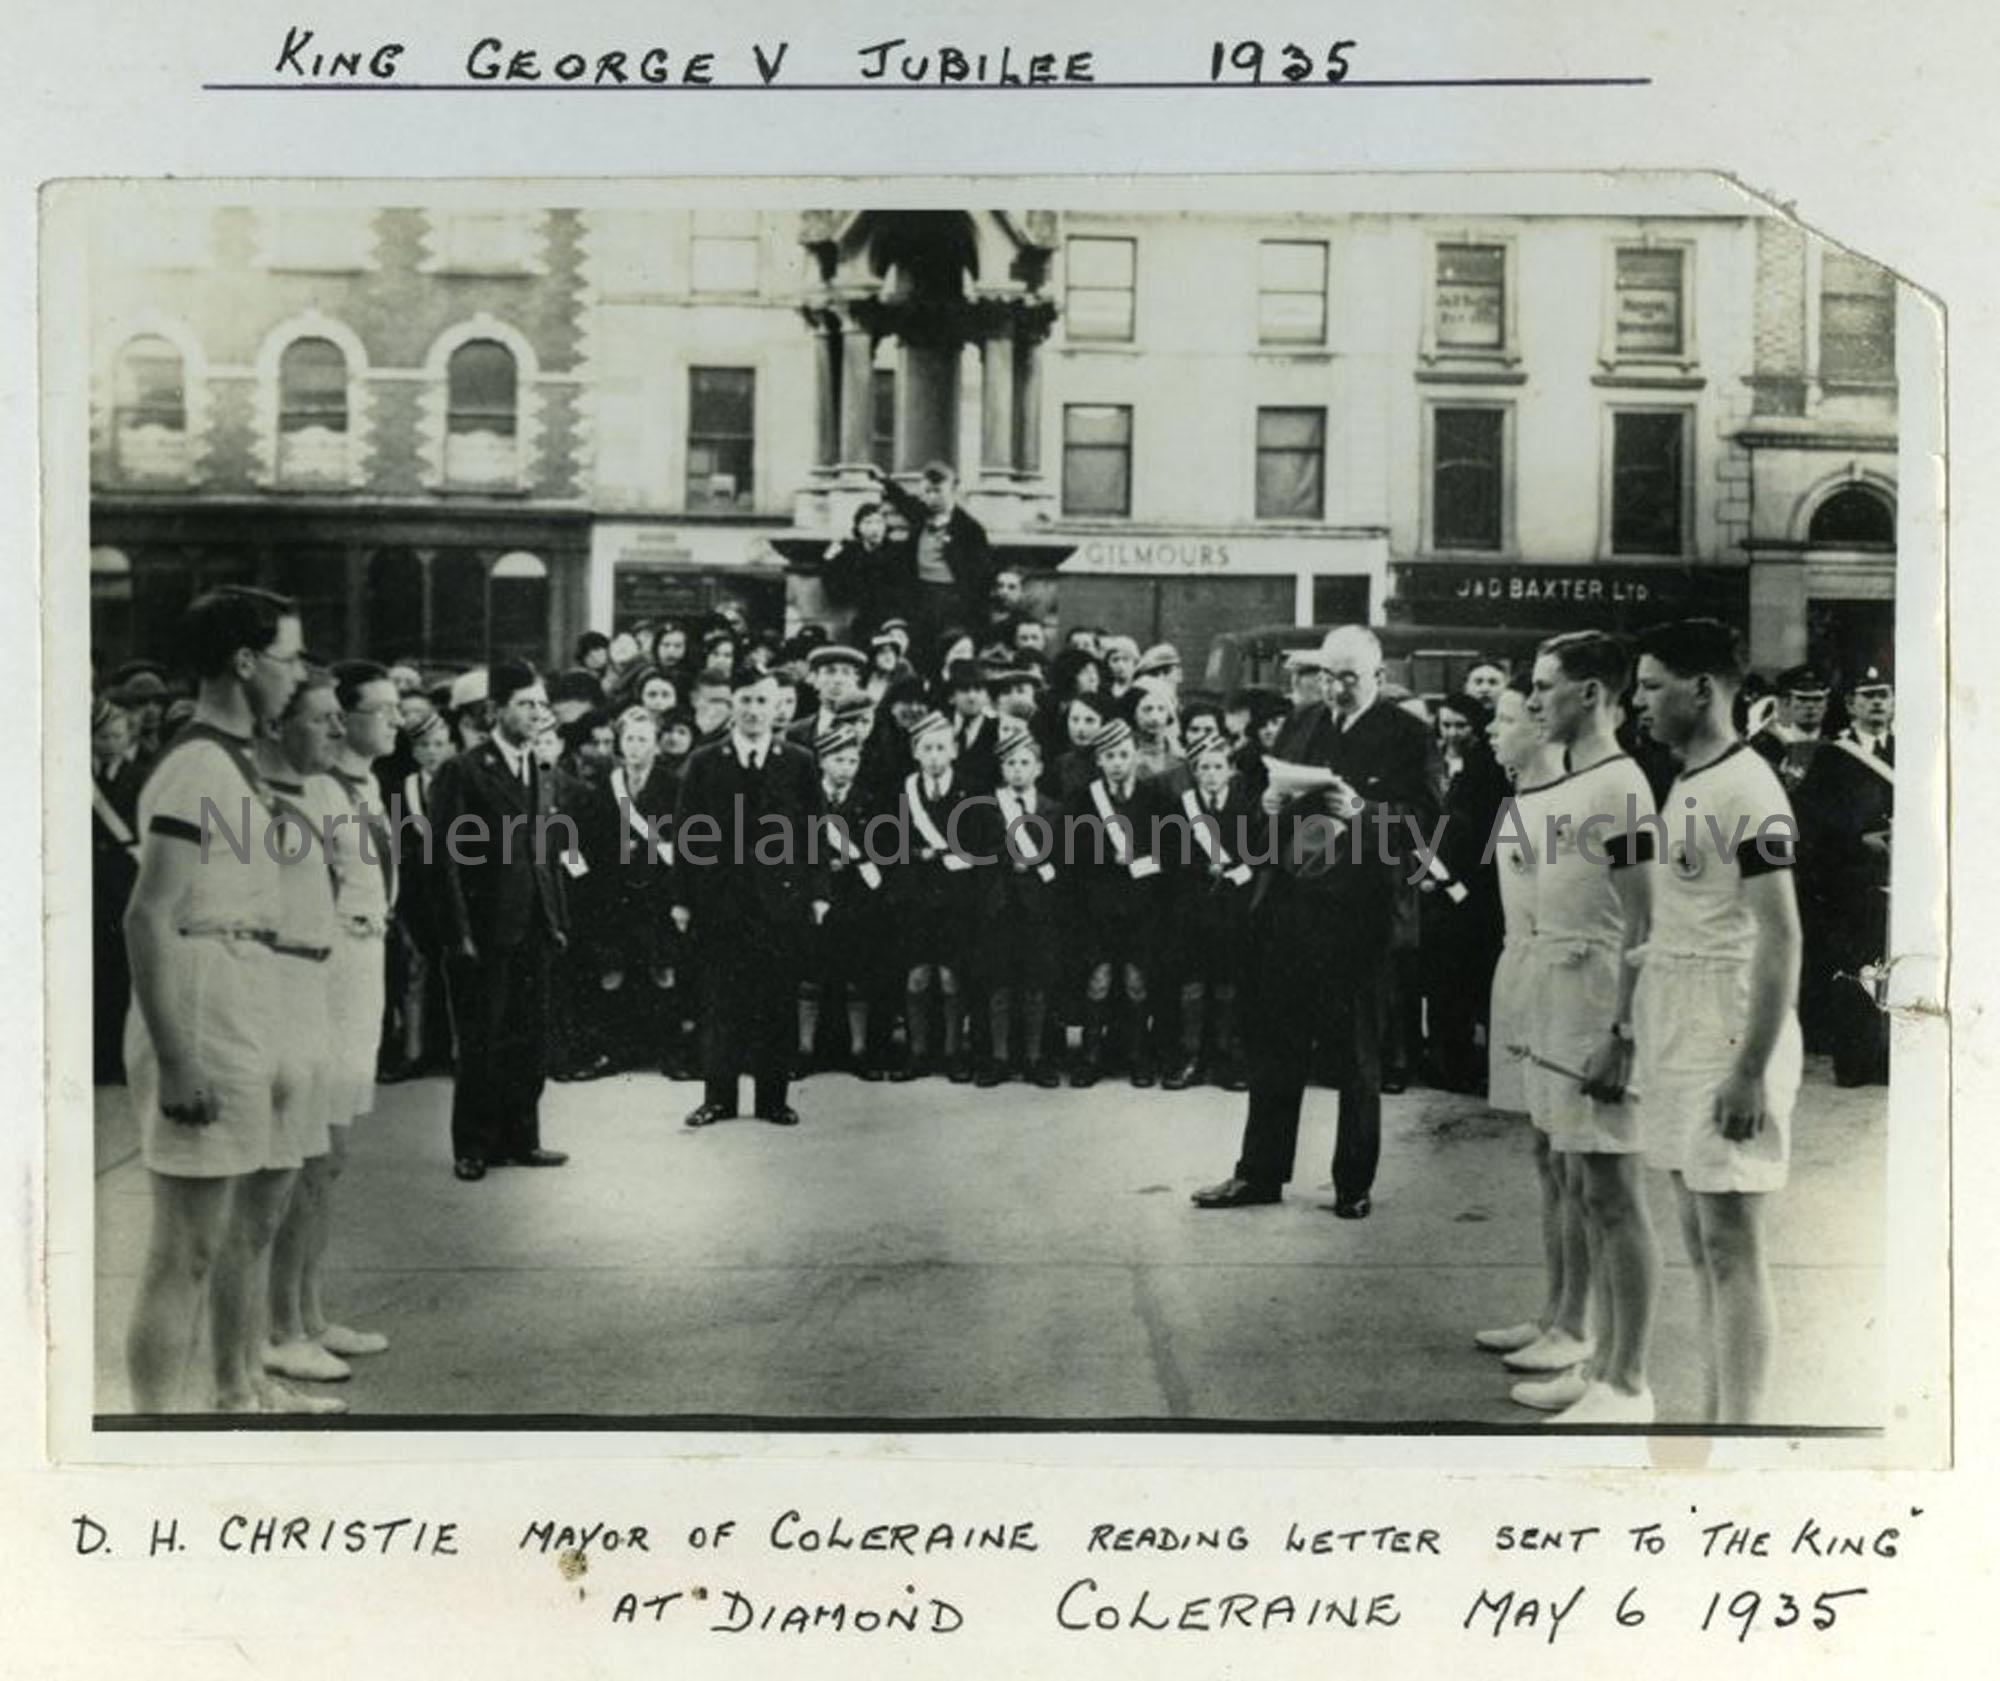 King George the V Jubilee at Diamond Coleraine, 1935